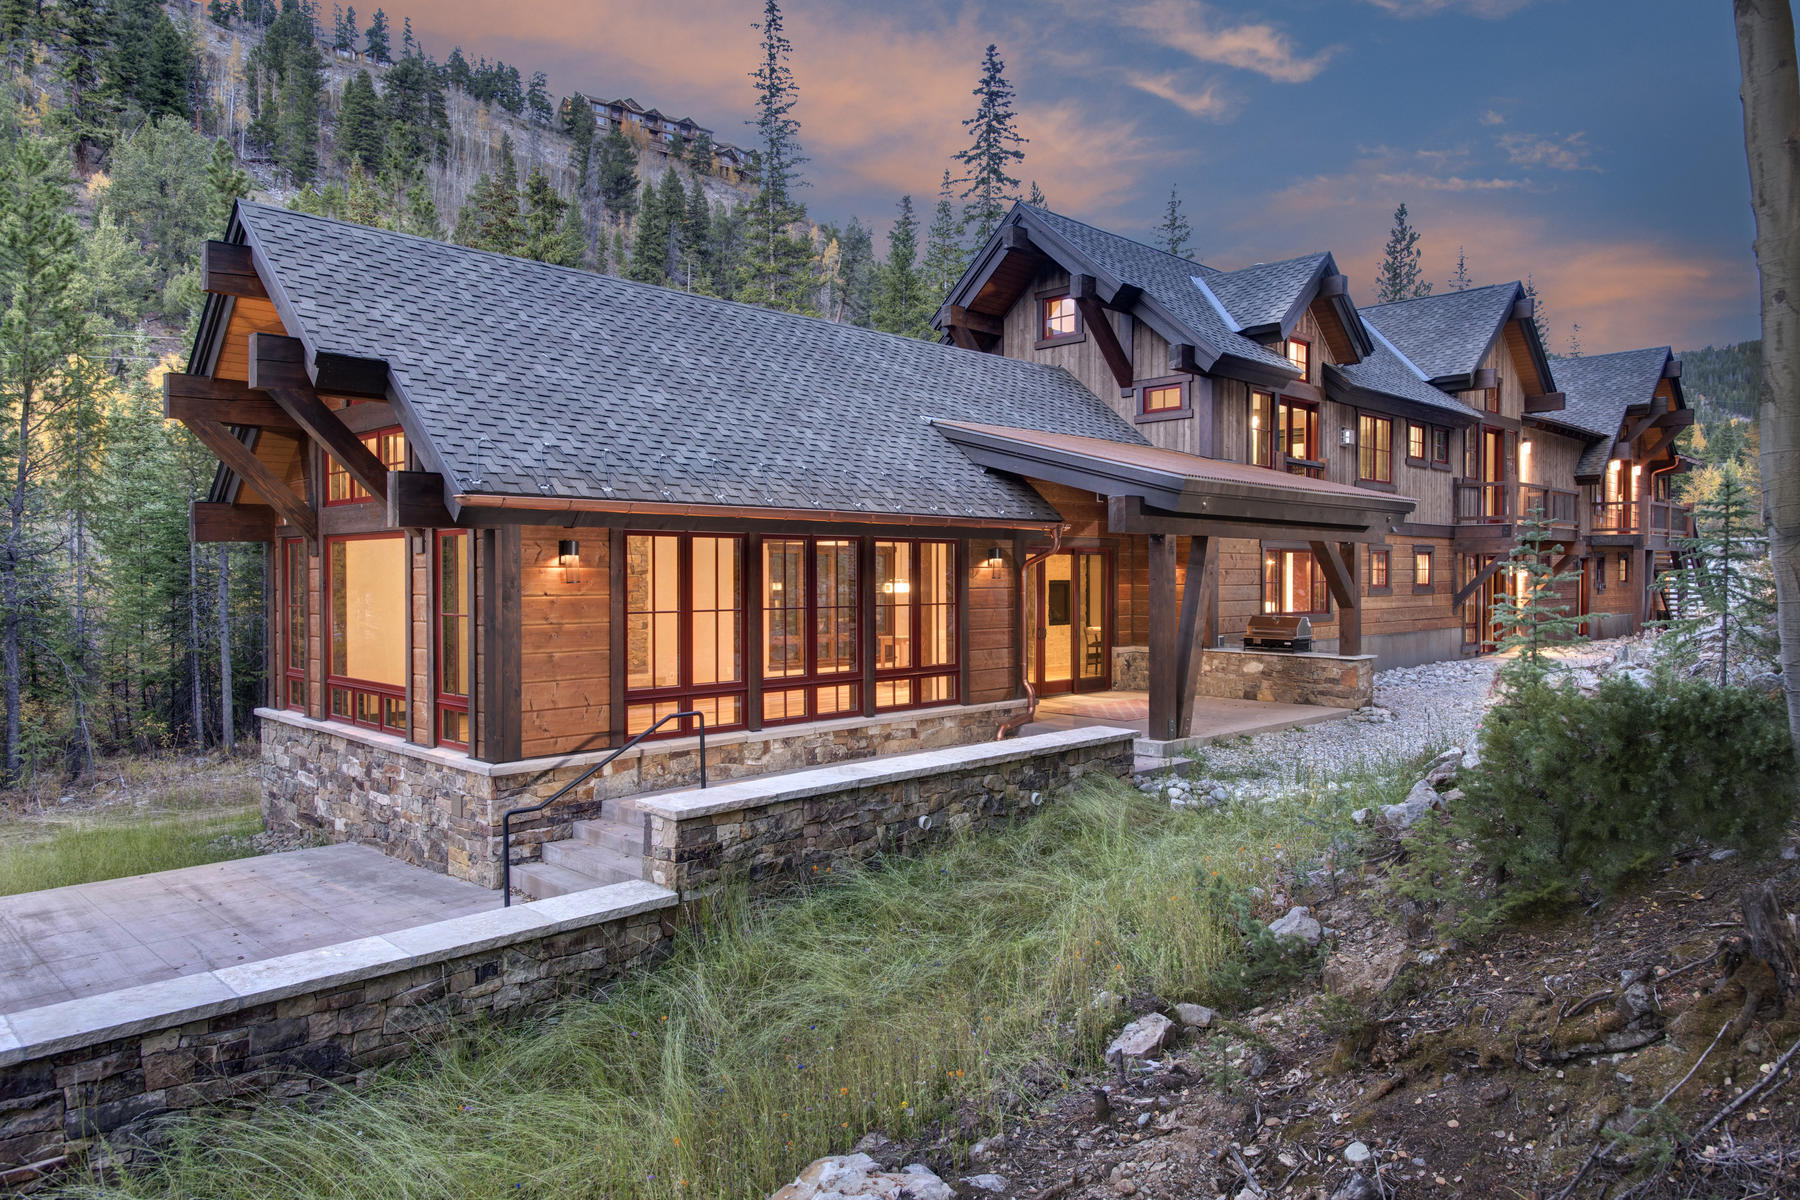 Single Family Home for Active at In Town Mountain Modern Masterpiece 1003 Boreas Pass Road Breckenridge, Colorado 80424 United States